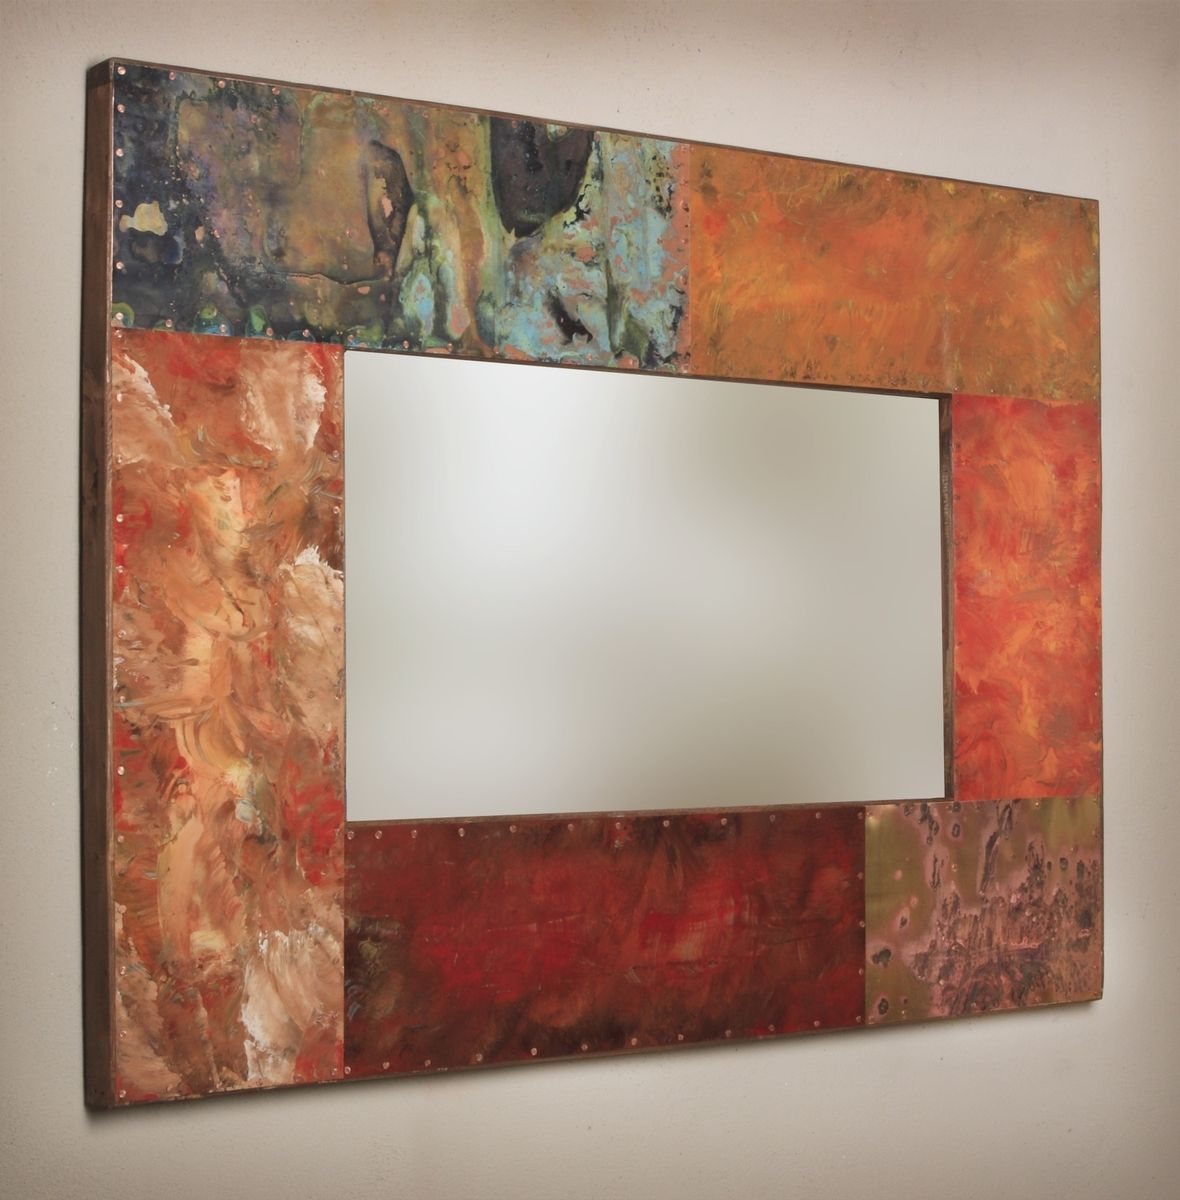 custom made copper and metal mirror frames by paul rung